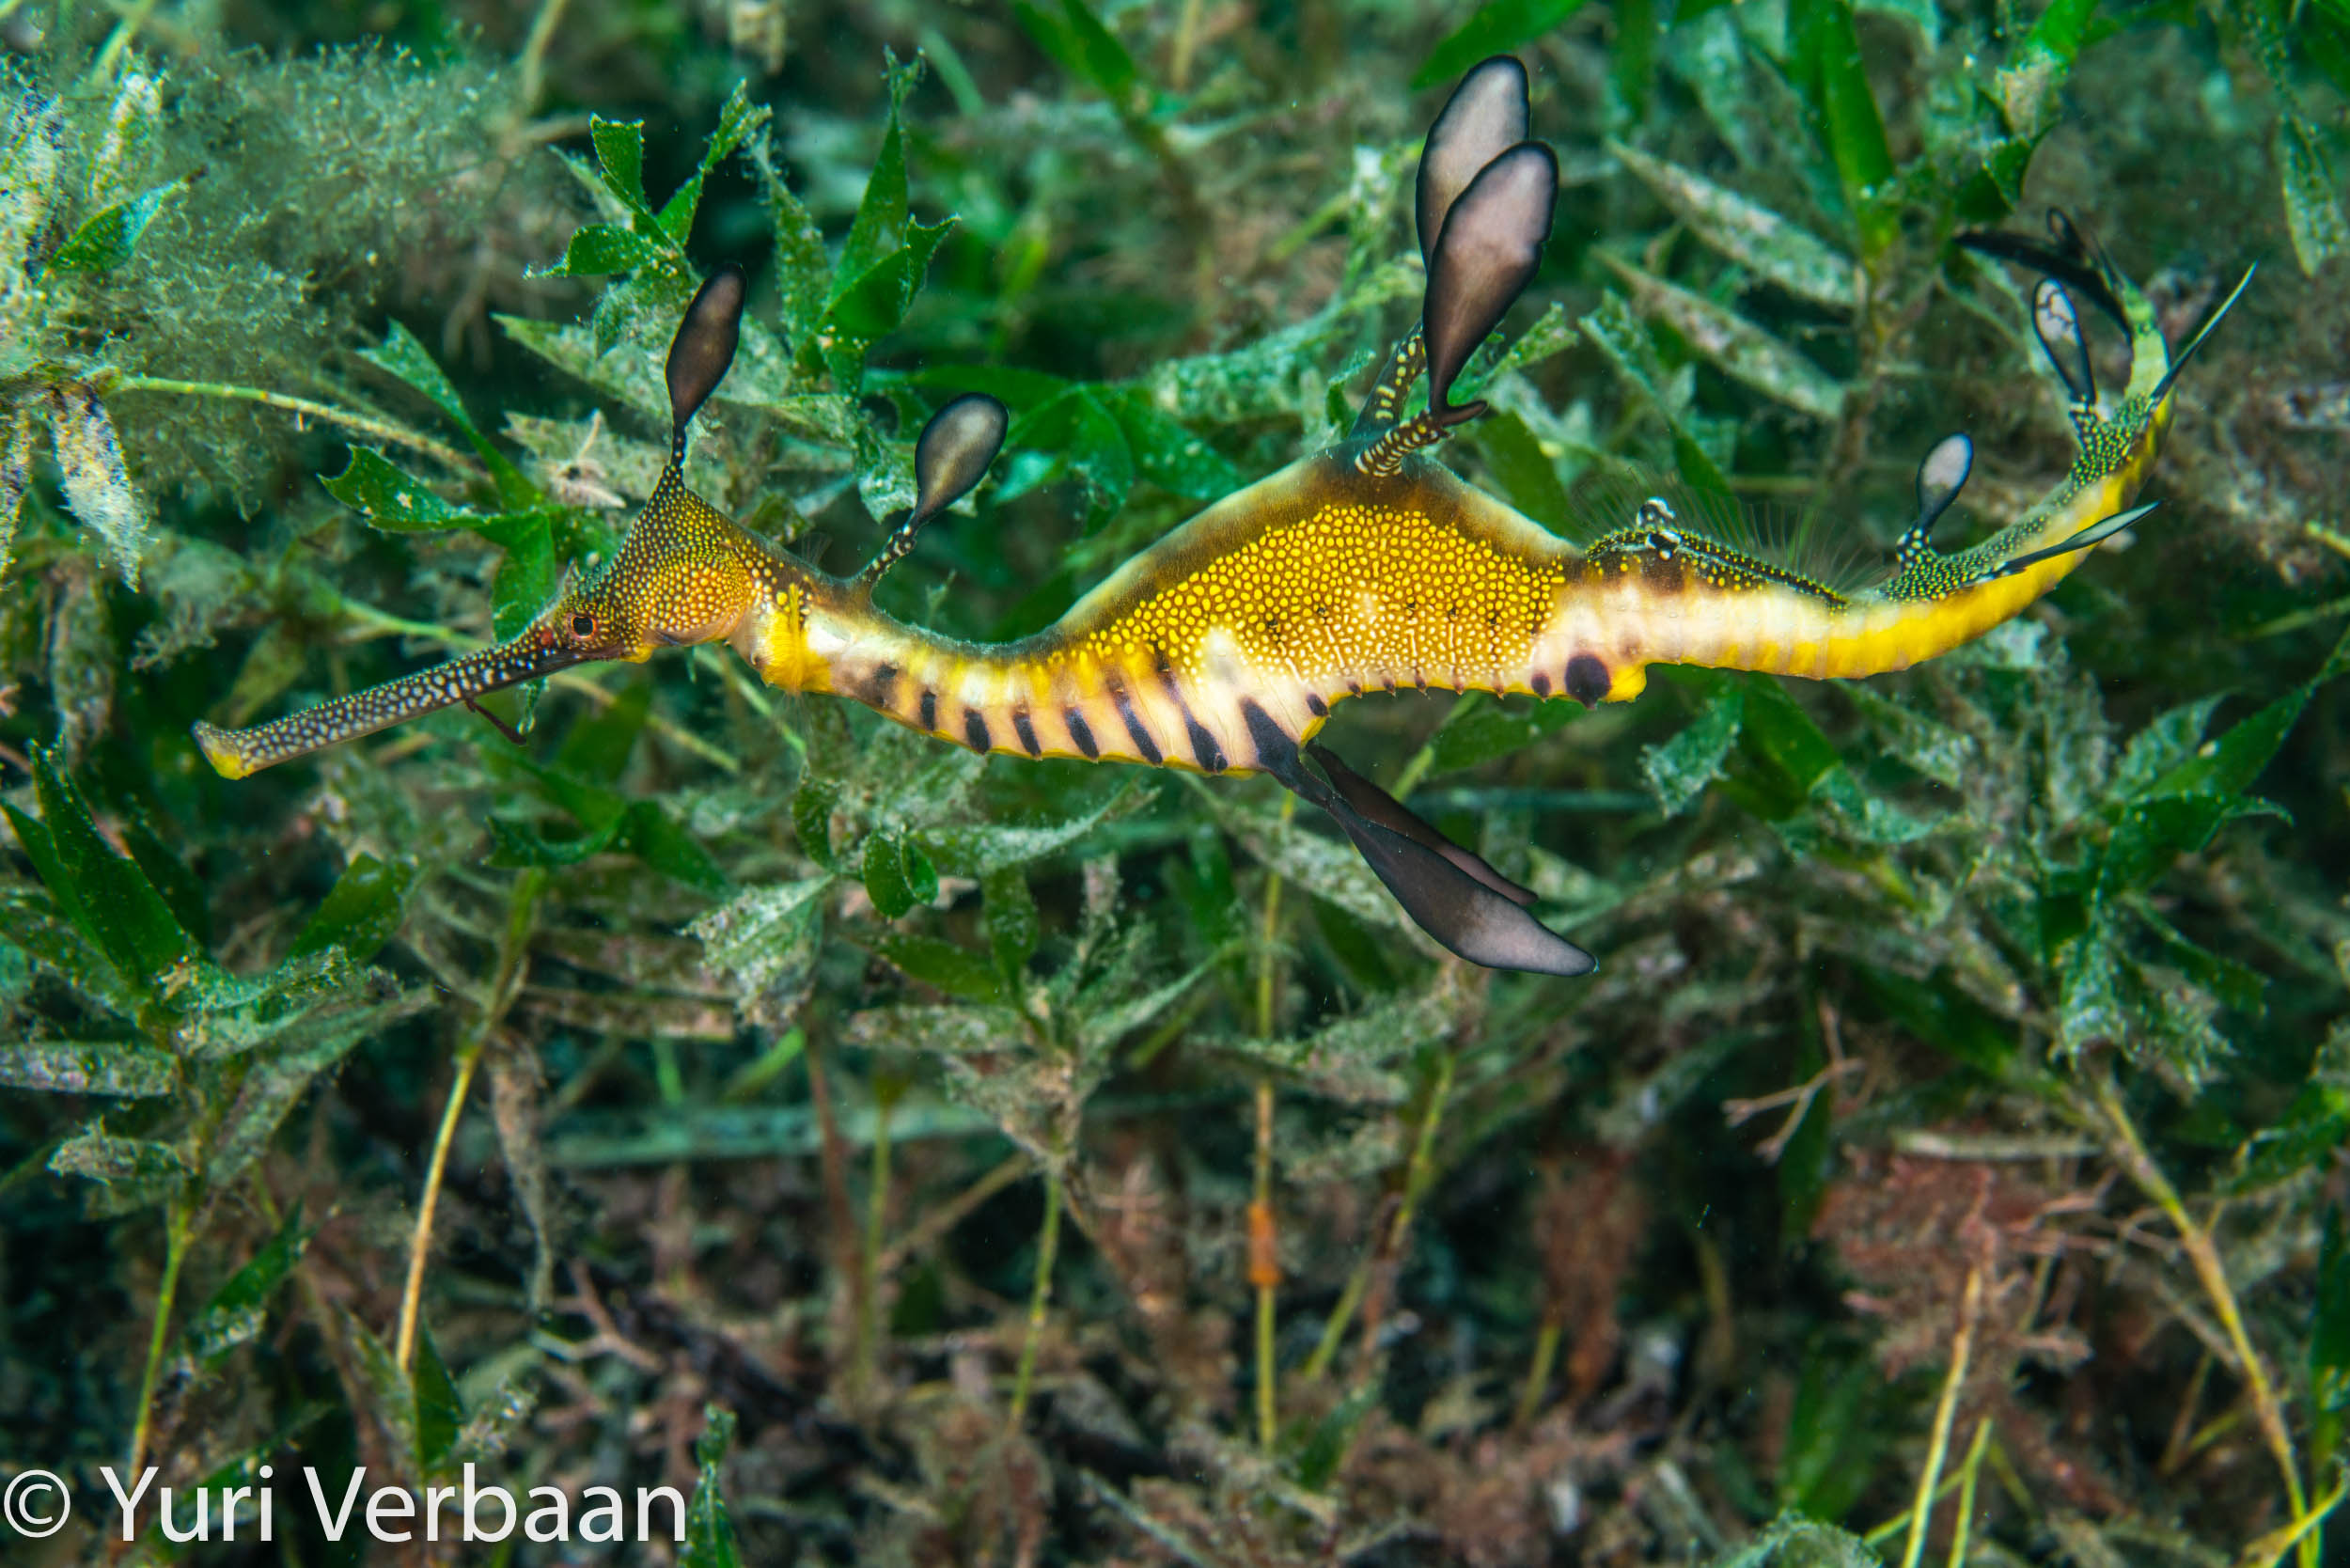 Common or Weedy seadragon (Phyllopteryx taeniolatus)